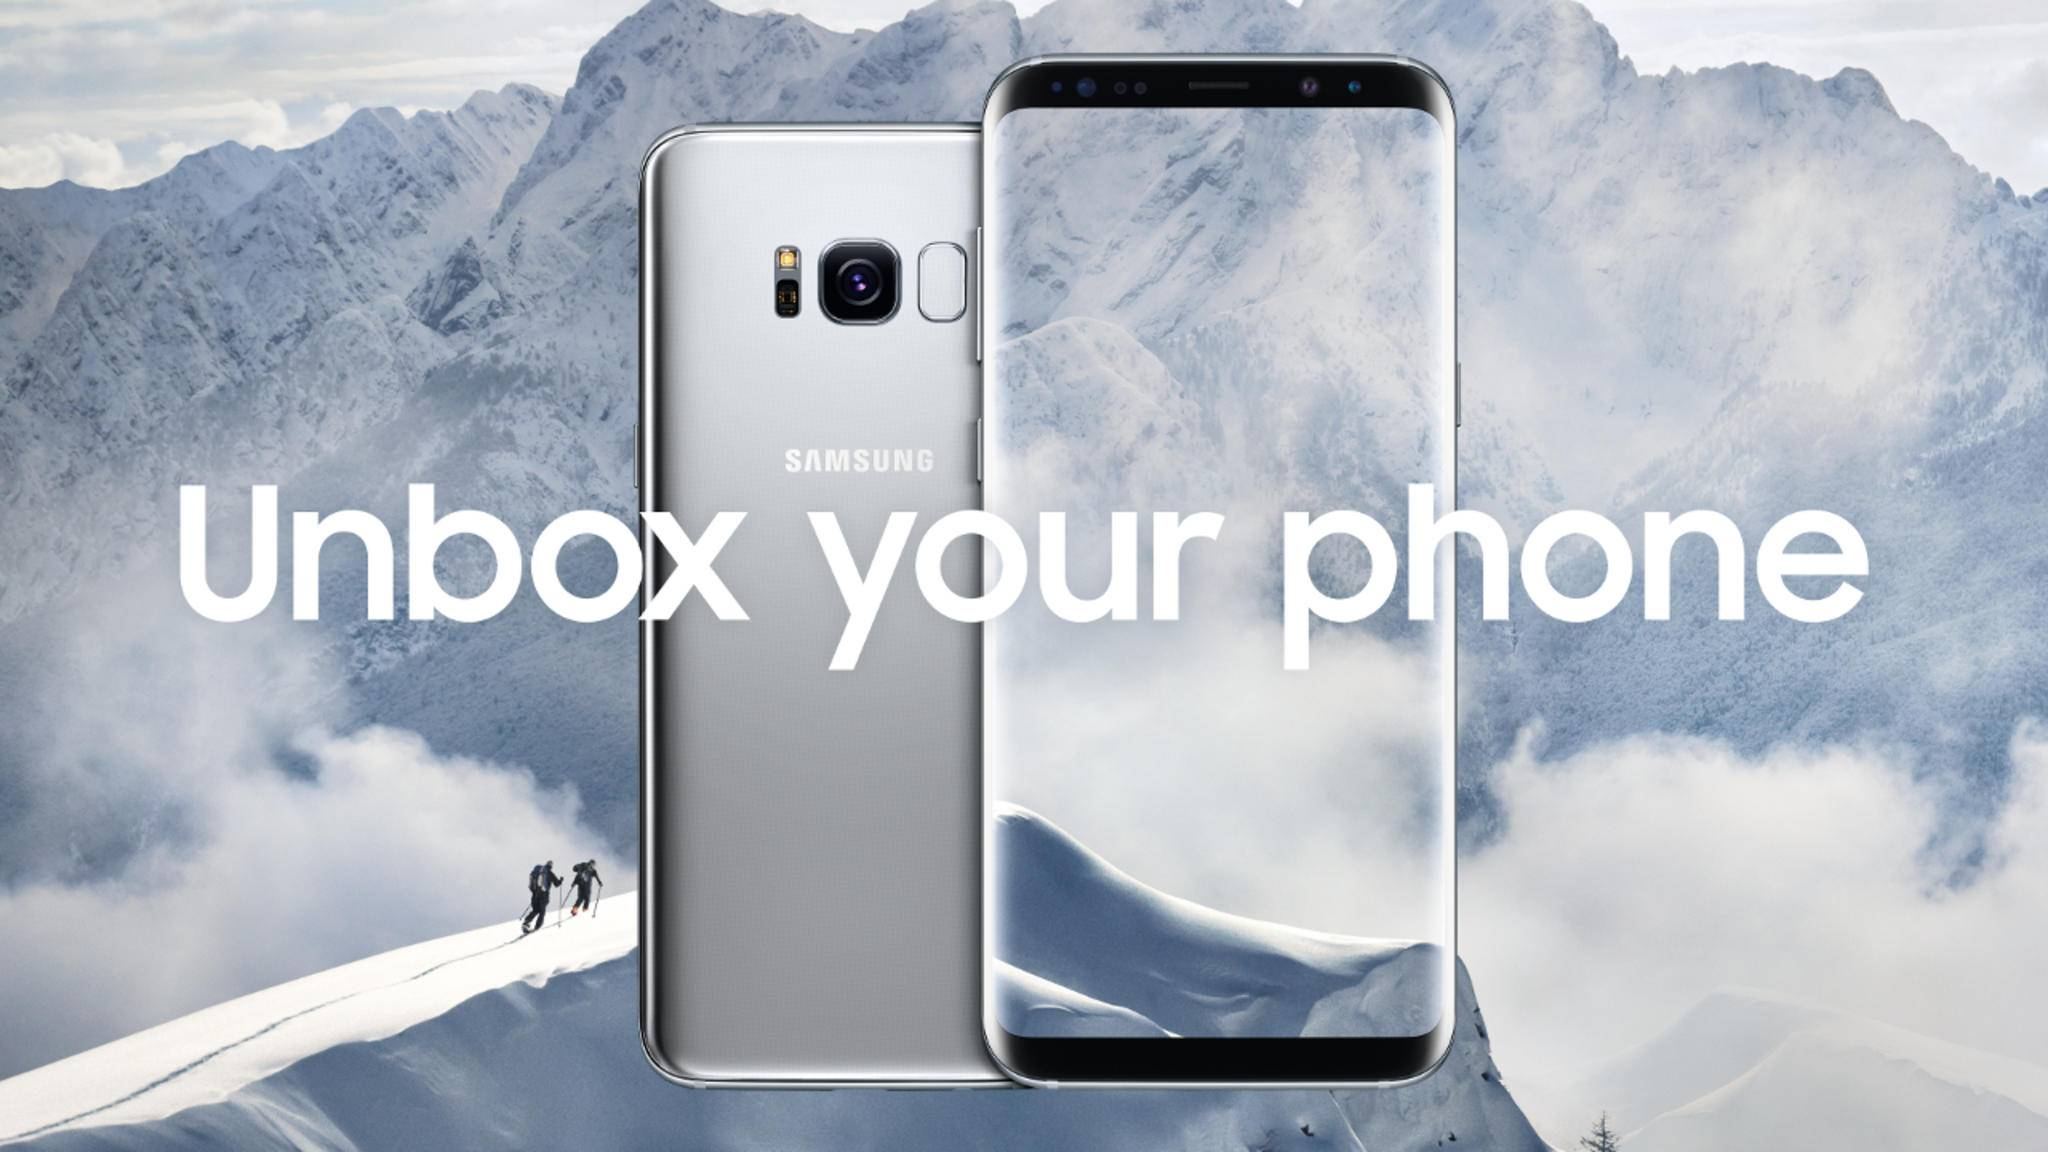 Das Galaxy S8 erscheint in China auch mit 6 GB RAM.https://www.turn-on.de/thema/samsung-galaxy-s8-1471